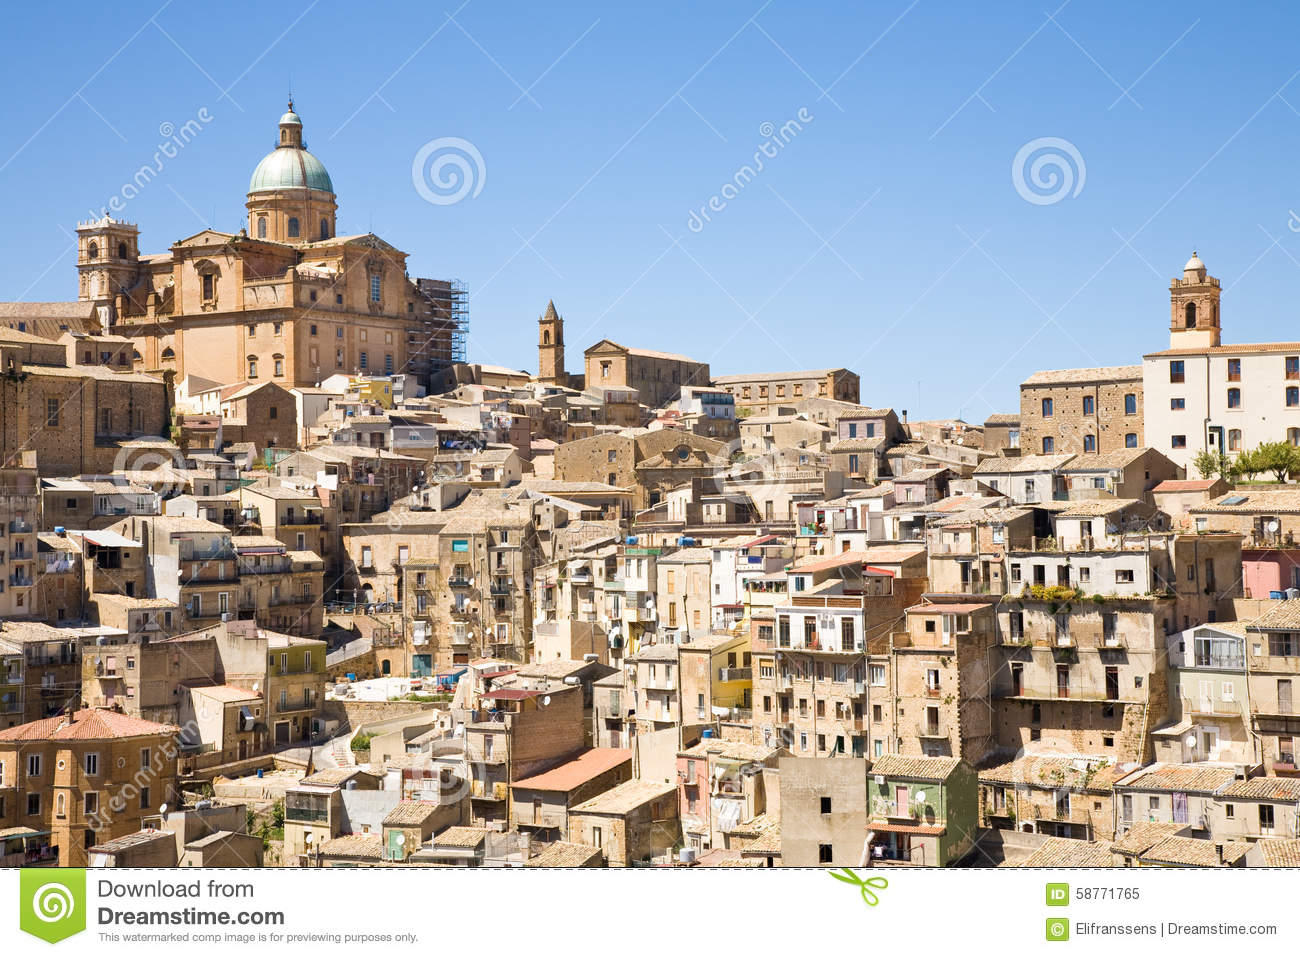 Piazza Armerina Italy  city photo : ... piazza armerina a hilltop village in the enna province of sicily italy